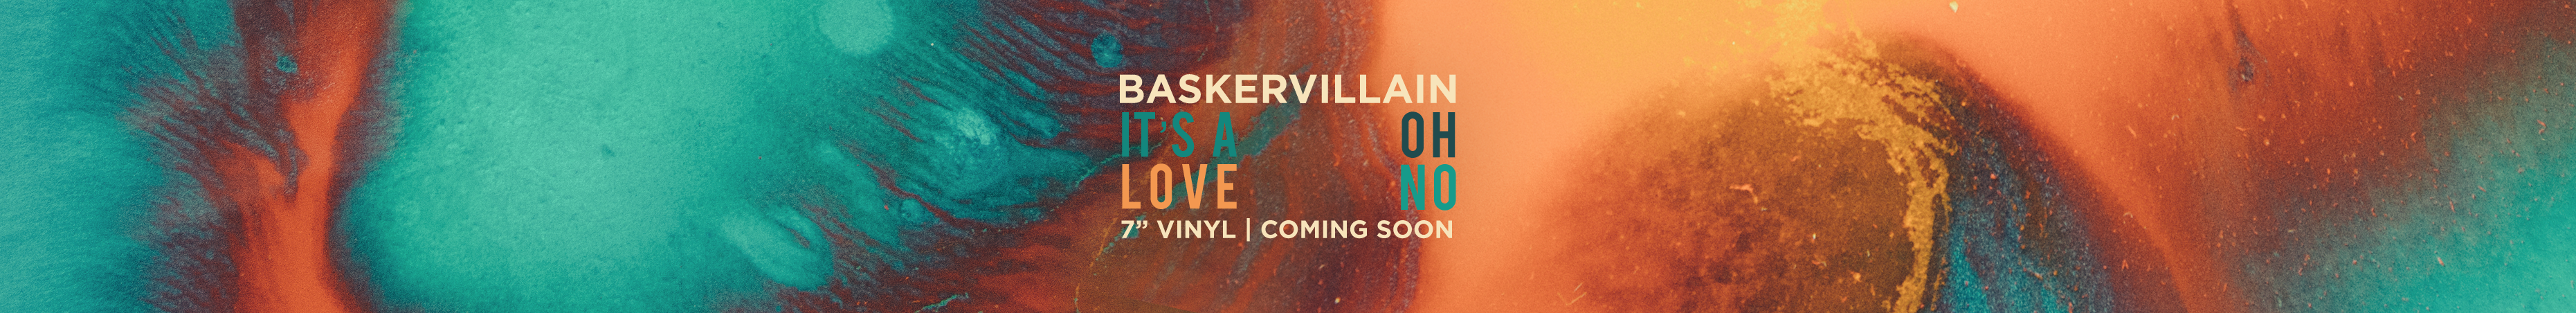 Baskervillain_7__banner_TH2 copy